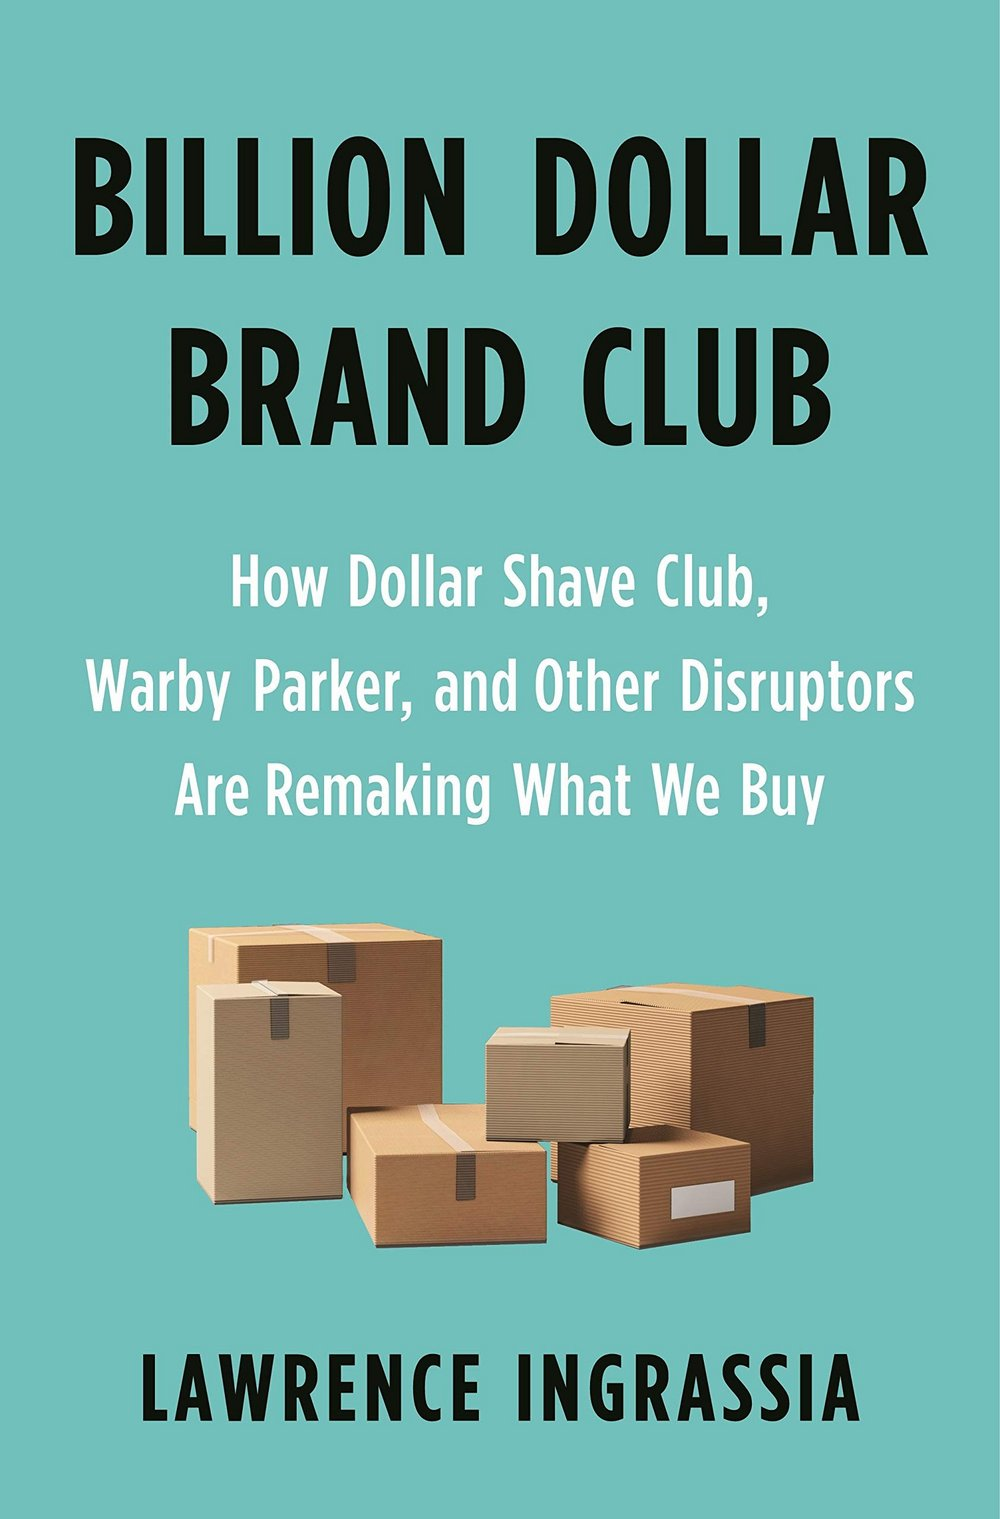 Body image for Contagious Book Report: Billion Dollar Brand Club